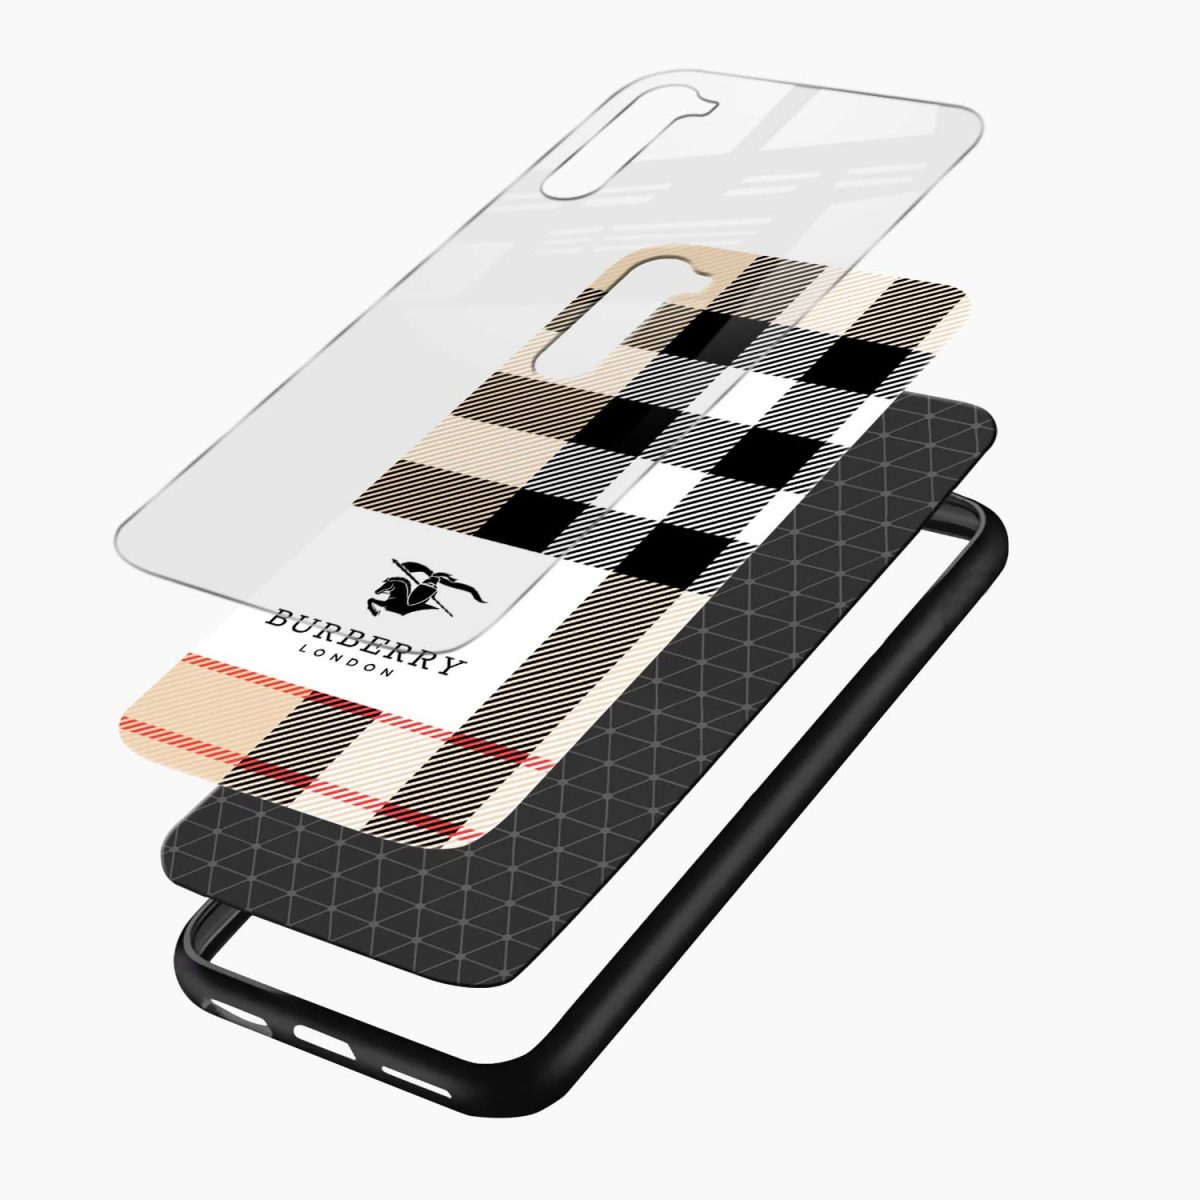 burberry cross lines pattern layers view oneplus nord back cover